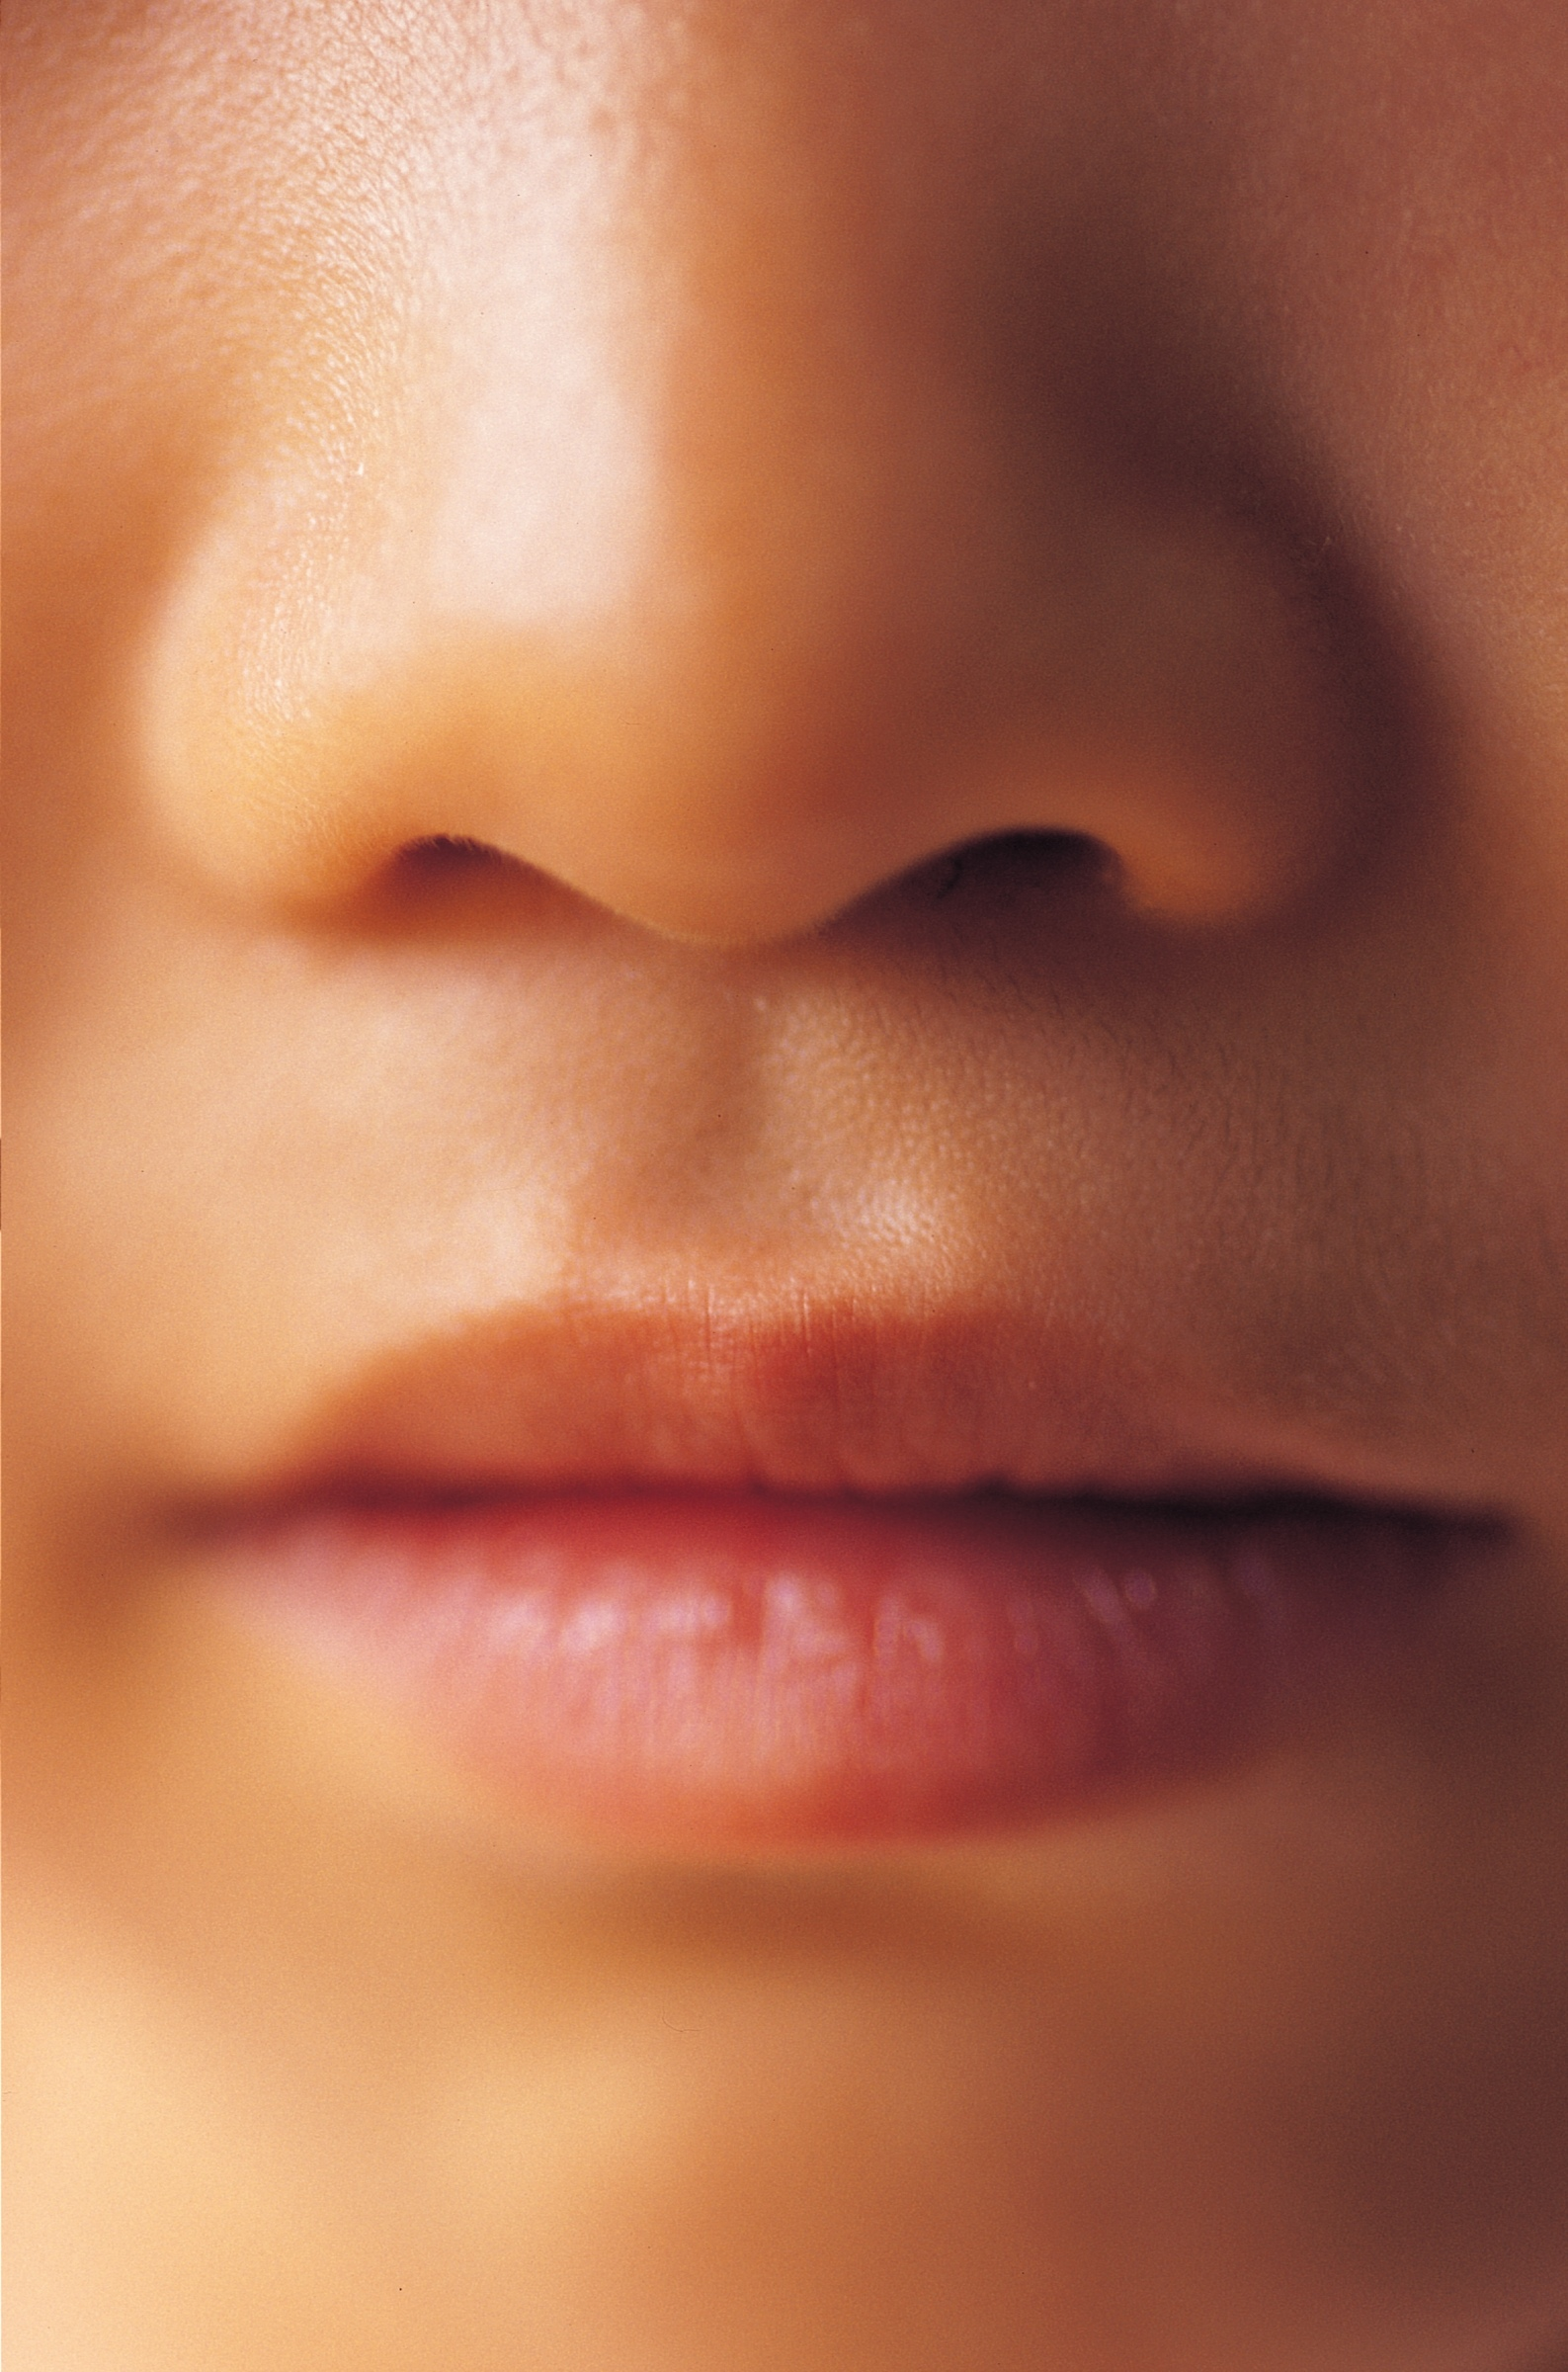 Image Result For Electronic Nose